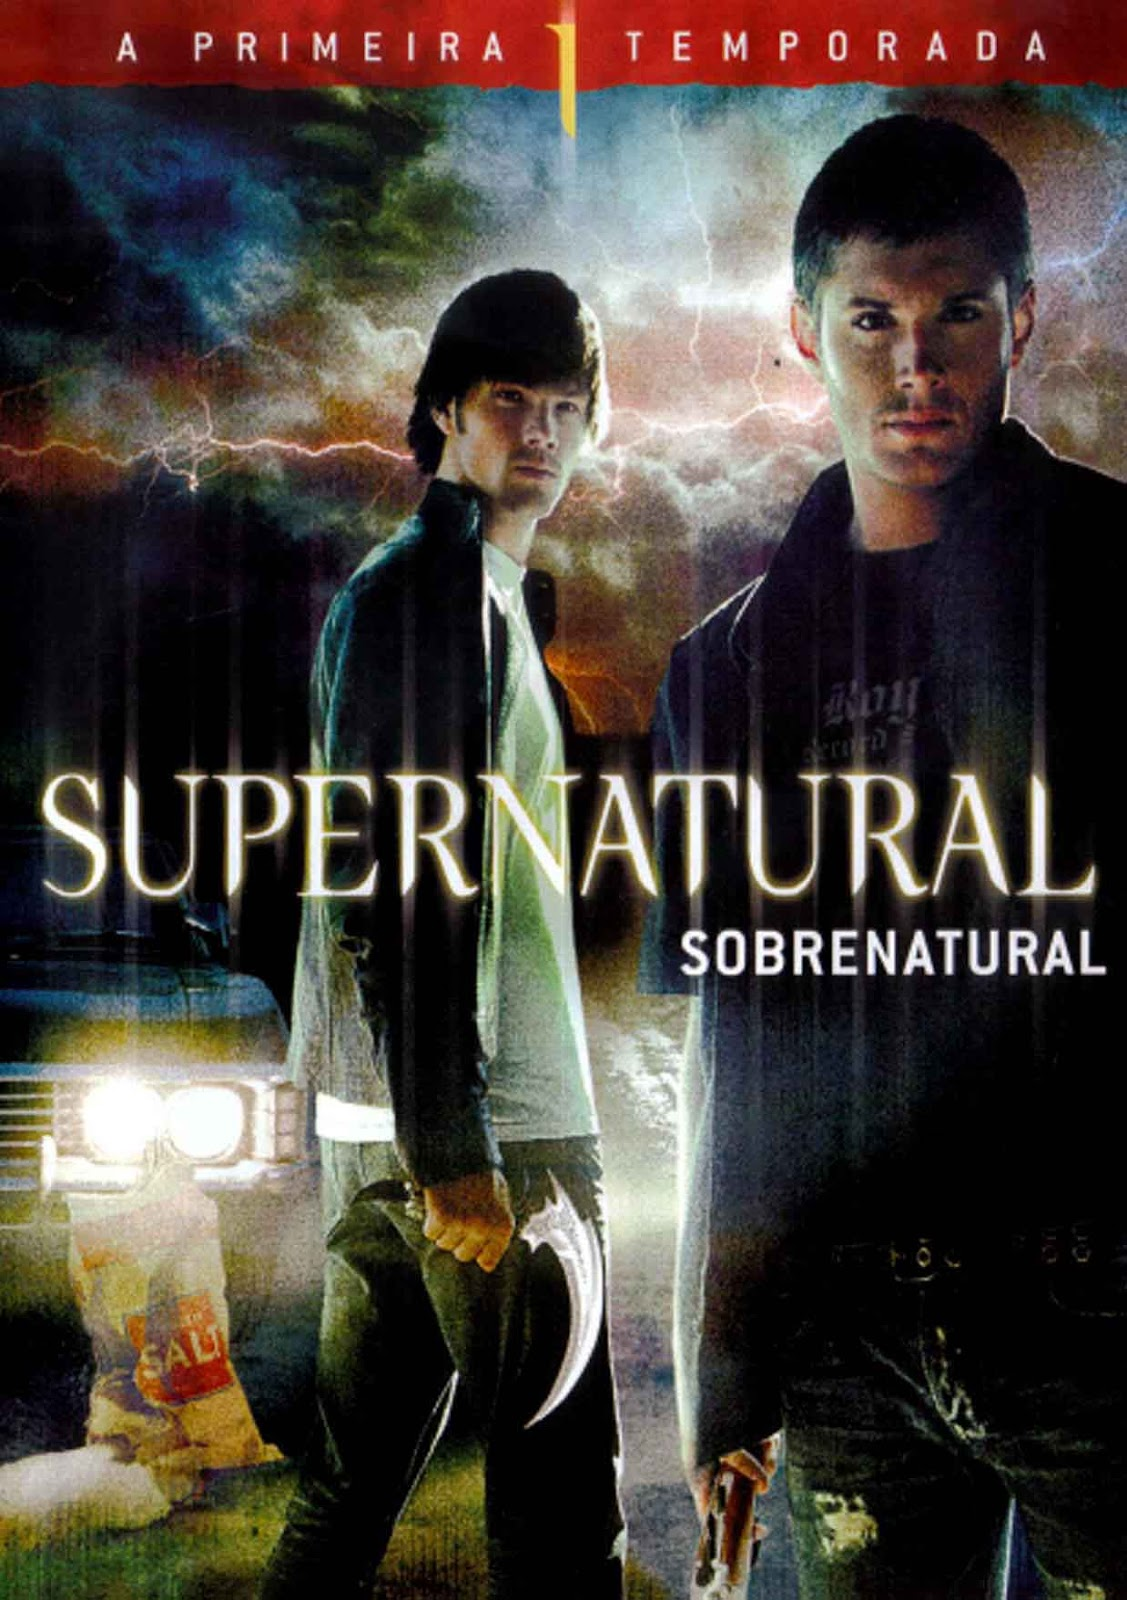 Sobrenatural 1ª Temporada Torrent - BluRay 720p Dual Áudio (2005)